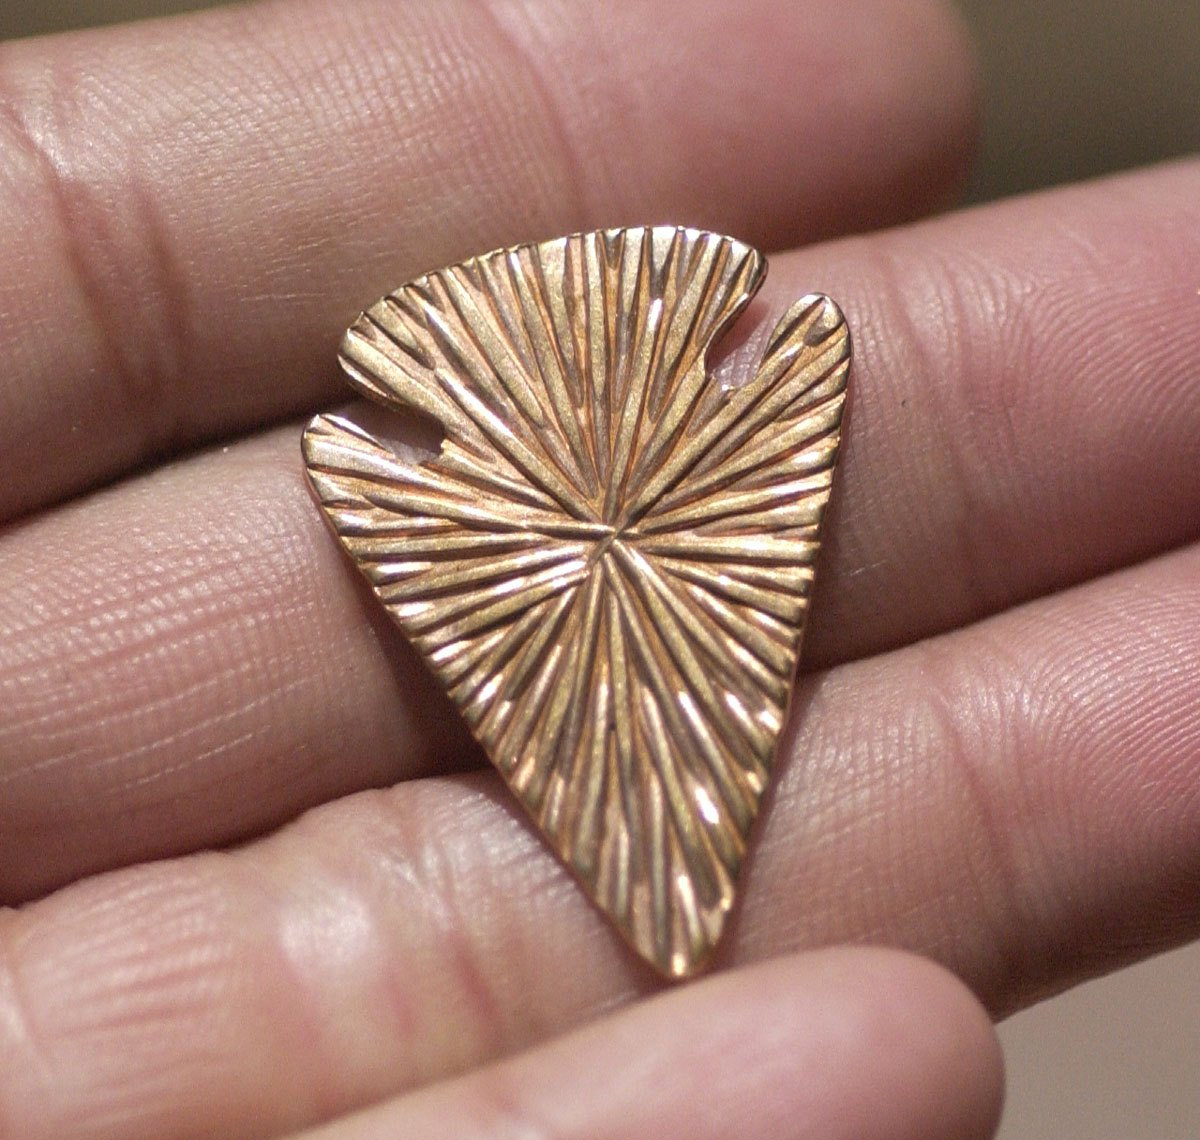 Radiating Sun Arrowhead Blanks Cutout Shape for Enameling Metalworking Soldering Blank Variety of Metals - 4 pieces